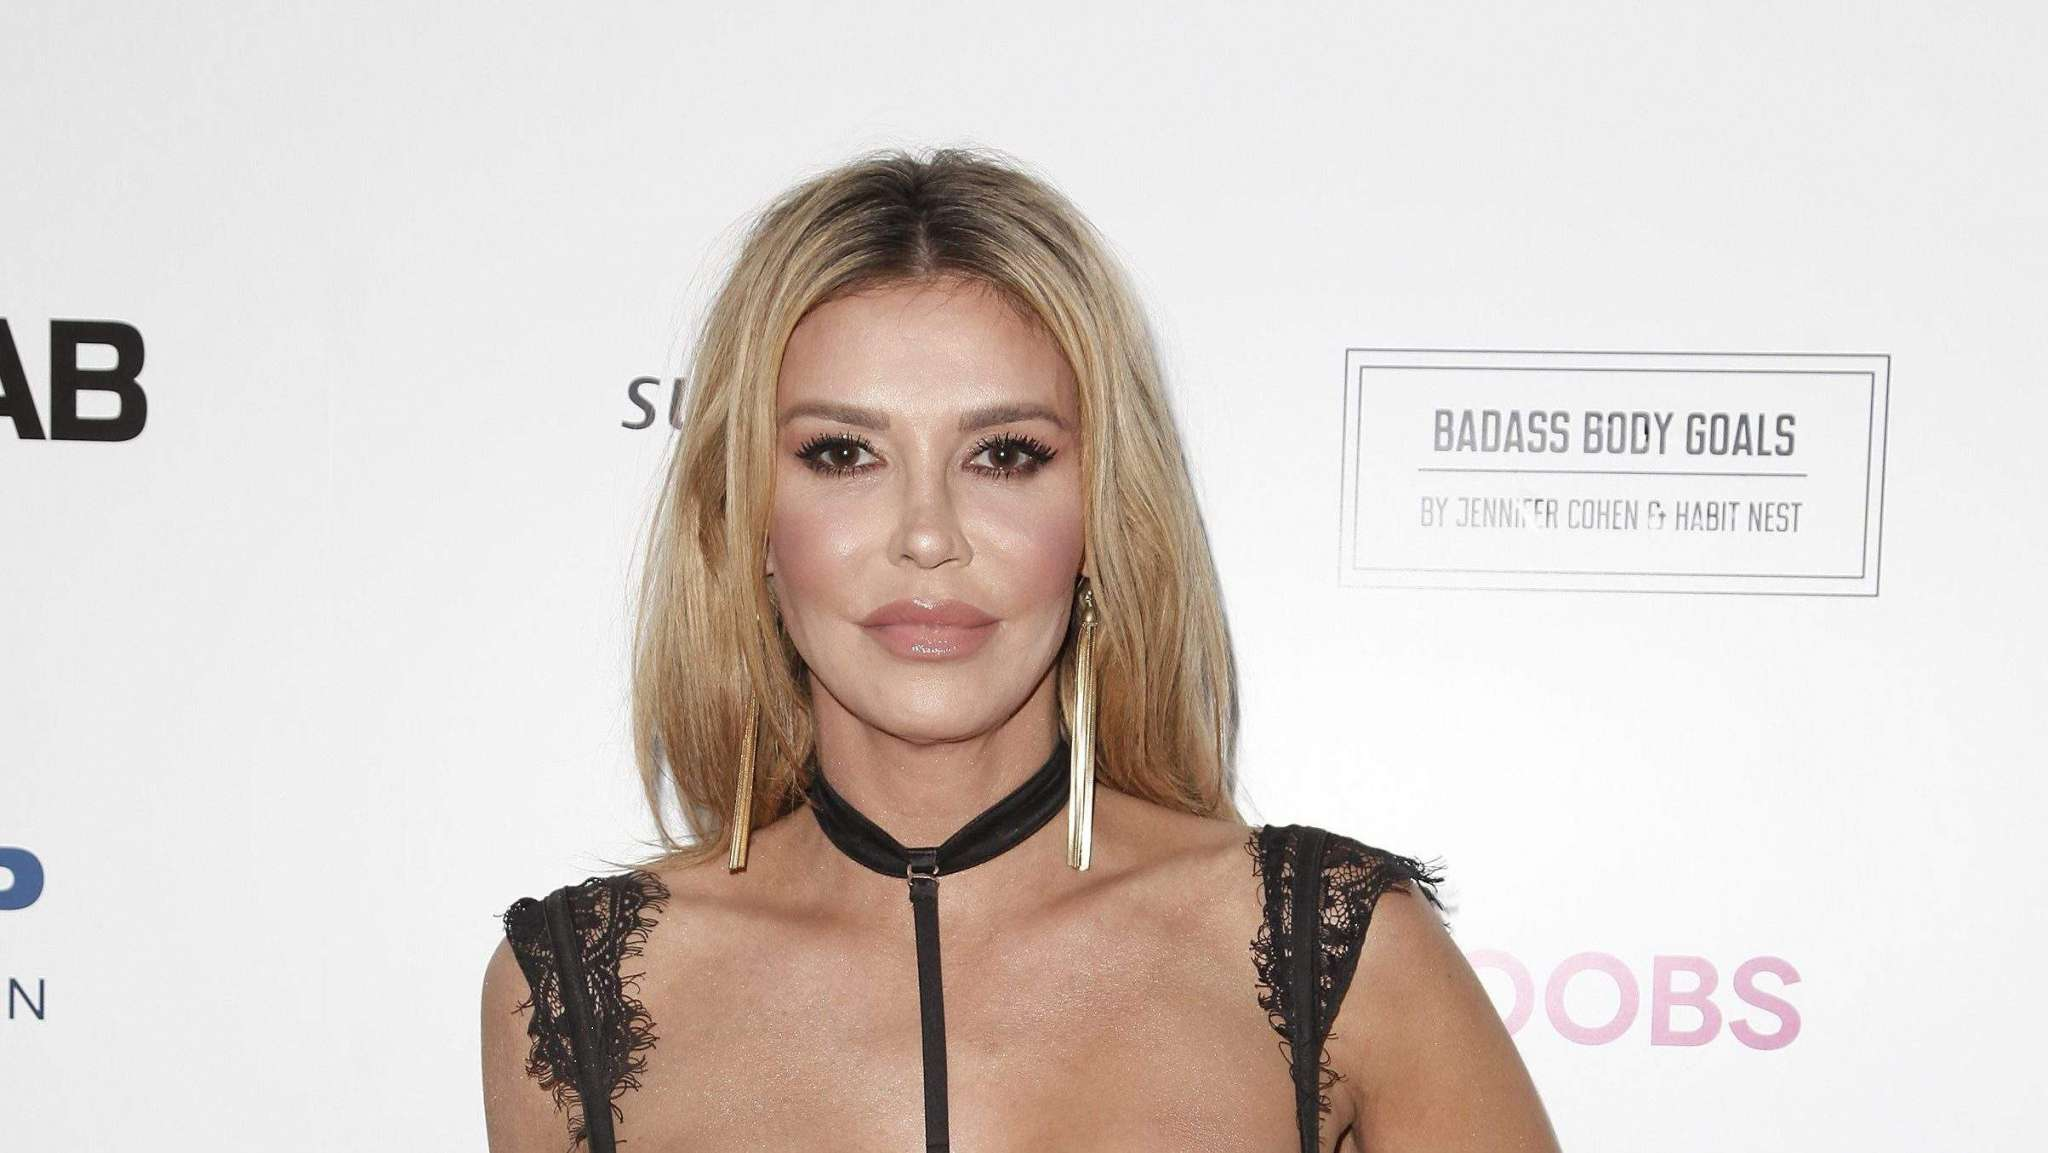 brandi-glanville-posts-shocking-picture-of-her-burned-face-in-response-to-plastic-surgery-rumors-heres-what-actually-happened-to-her